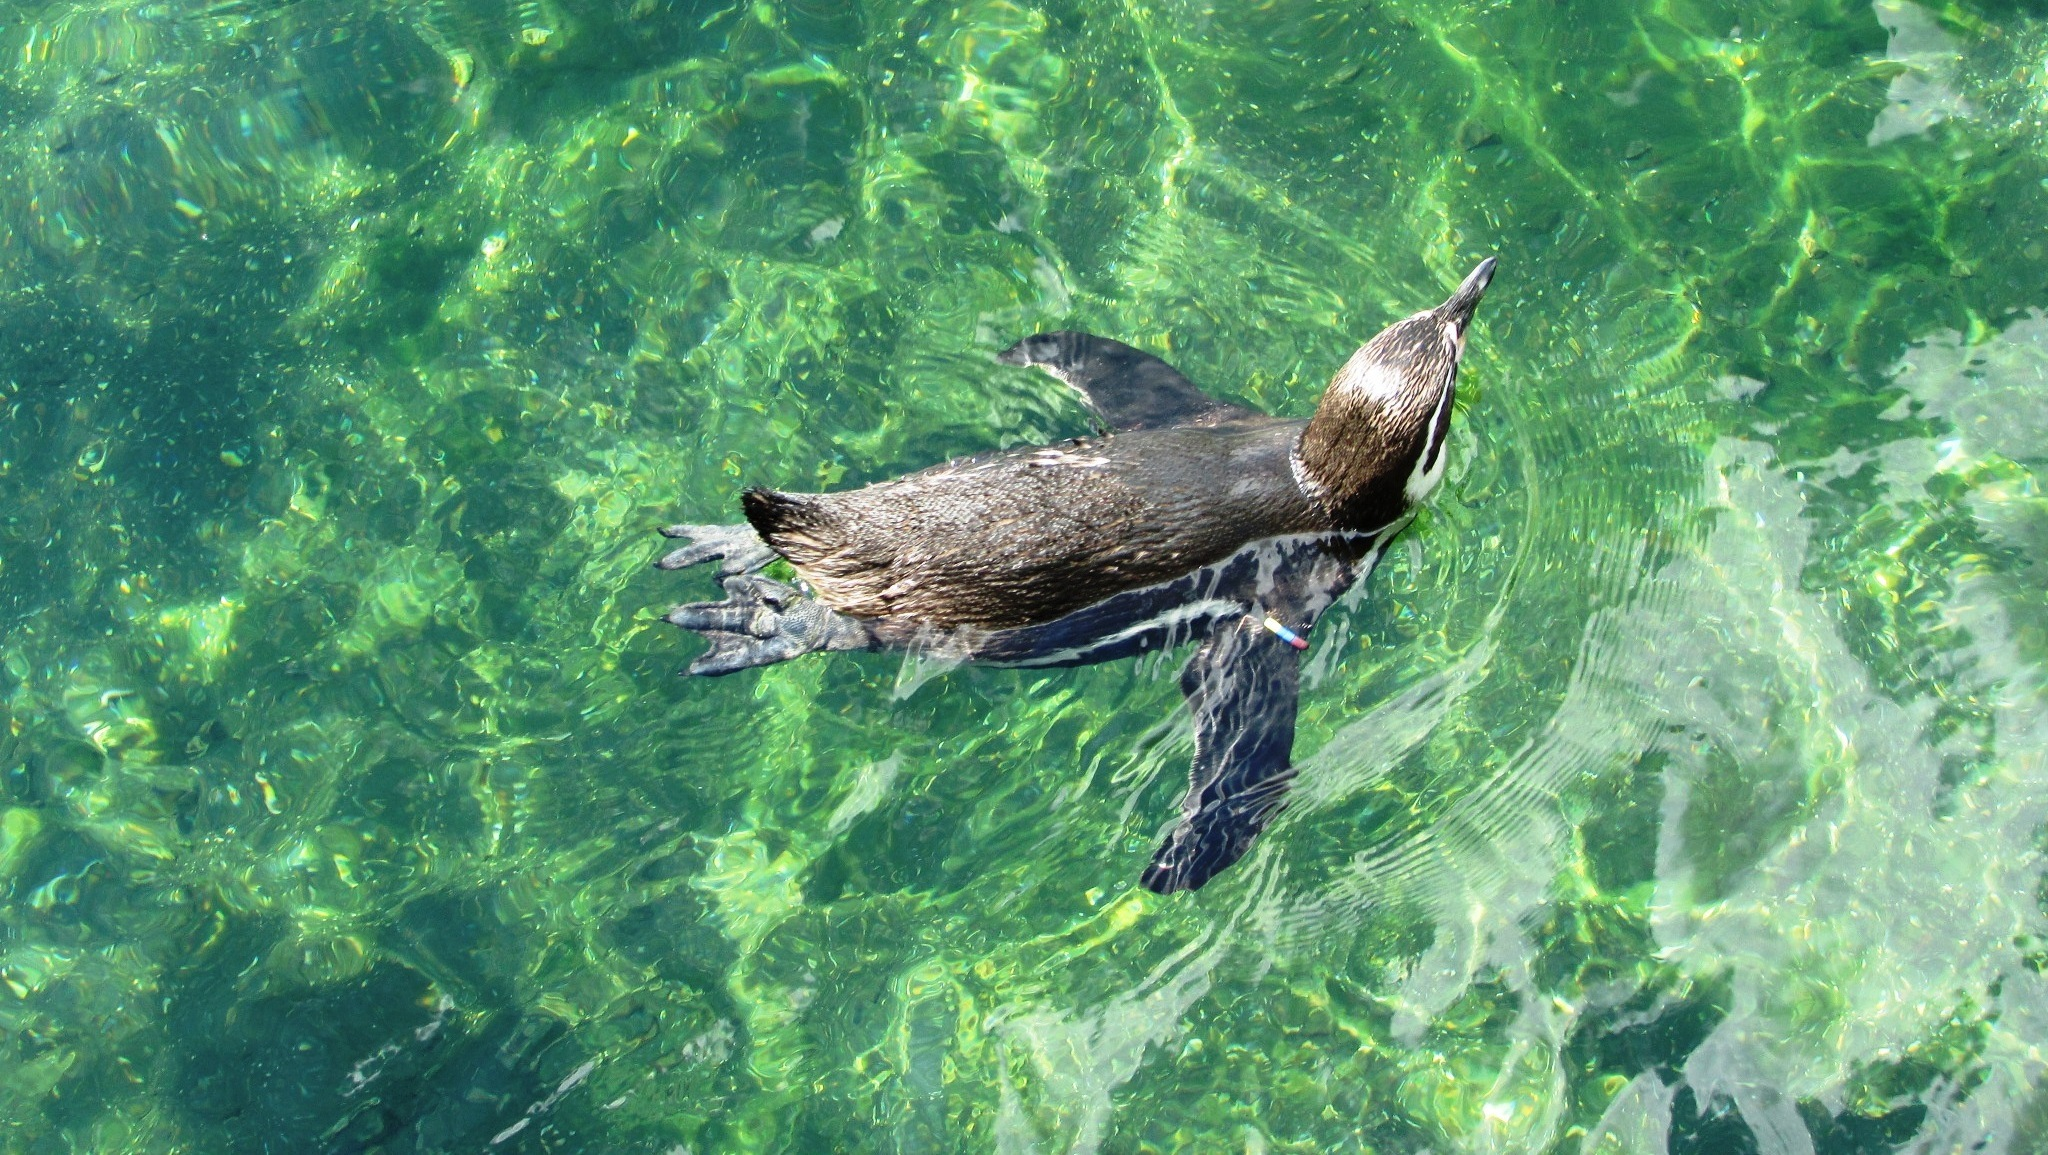 peruvian penguin relaxing in the water by gineke.sterenborg